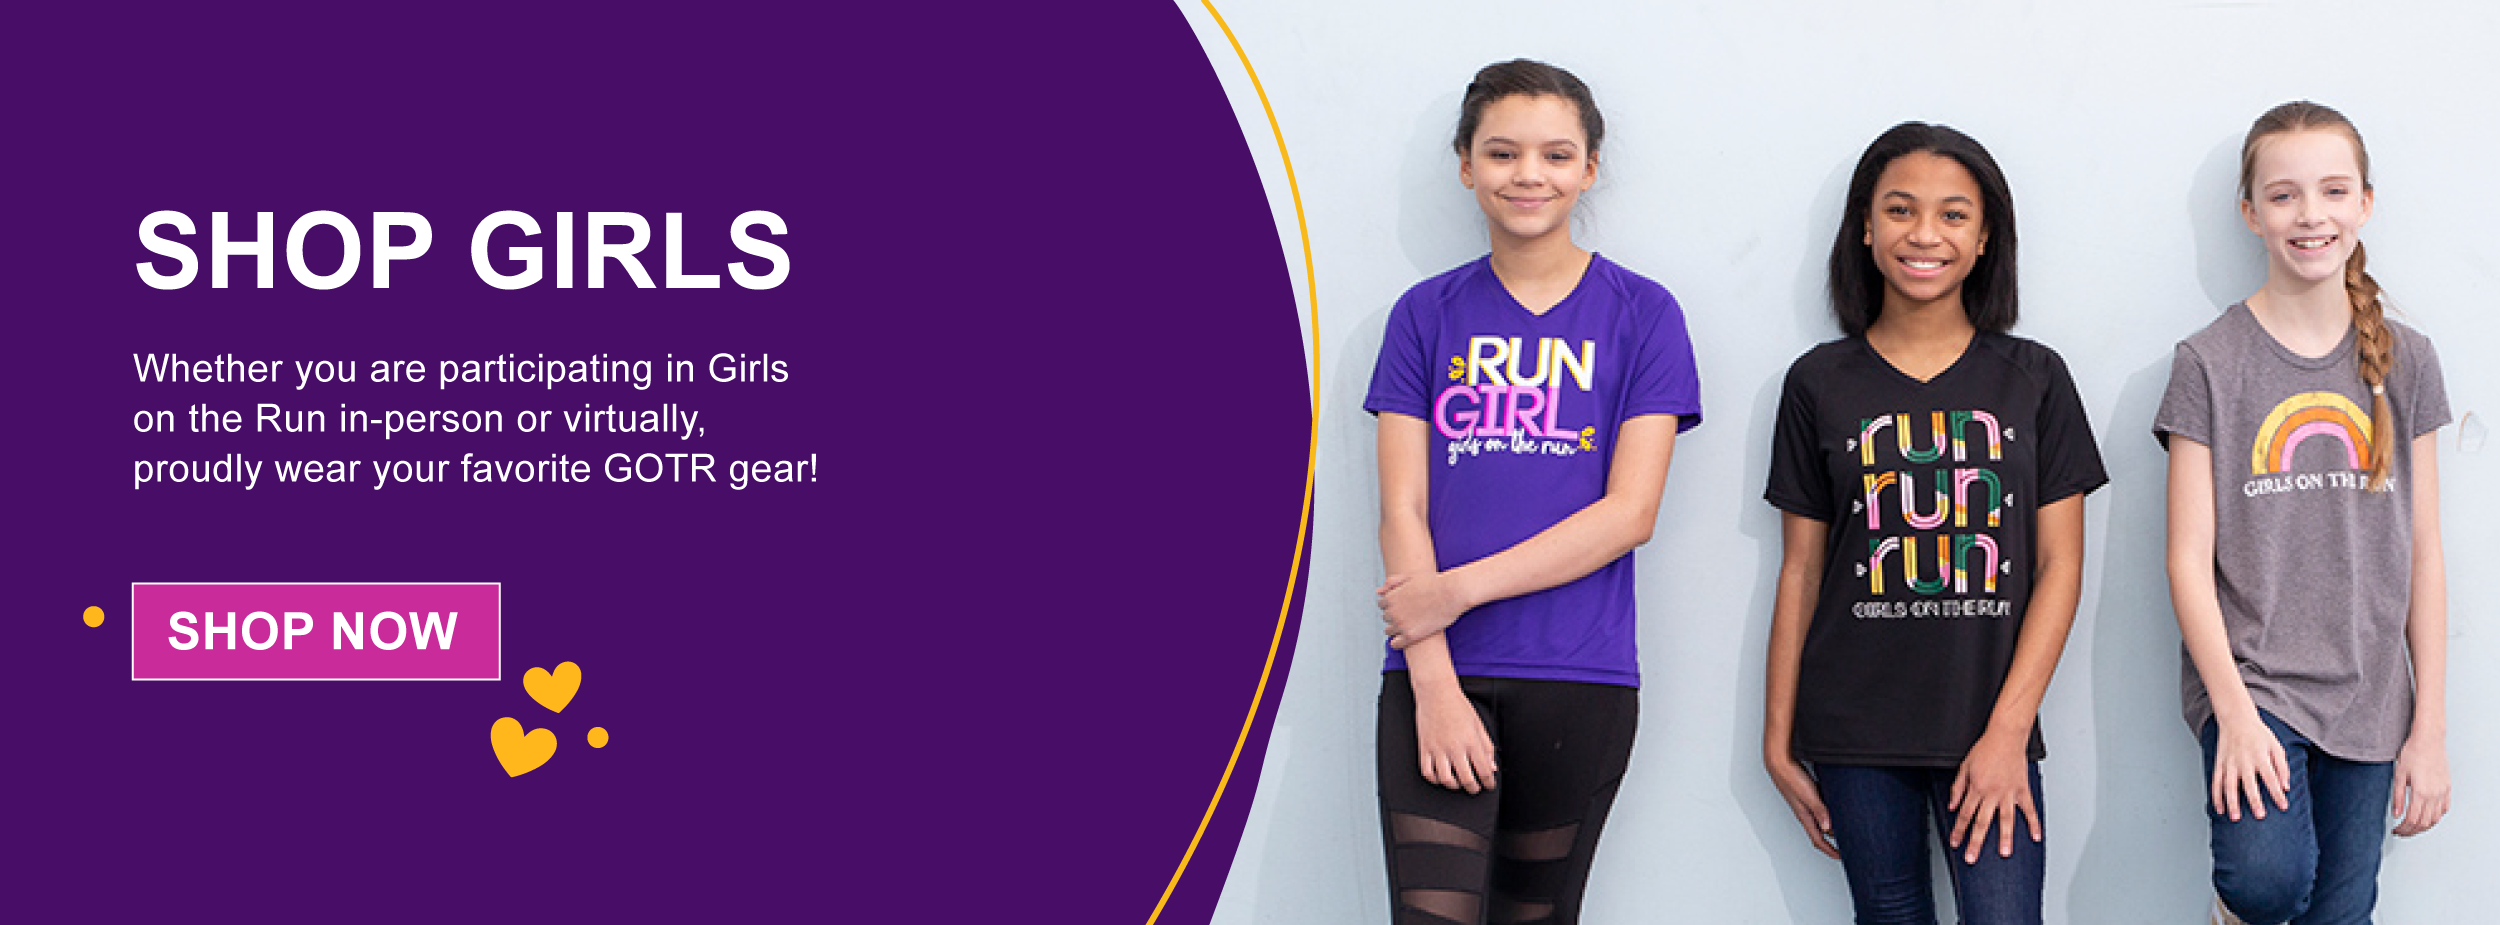 girls on the run merchandise youth girls